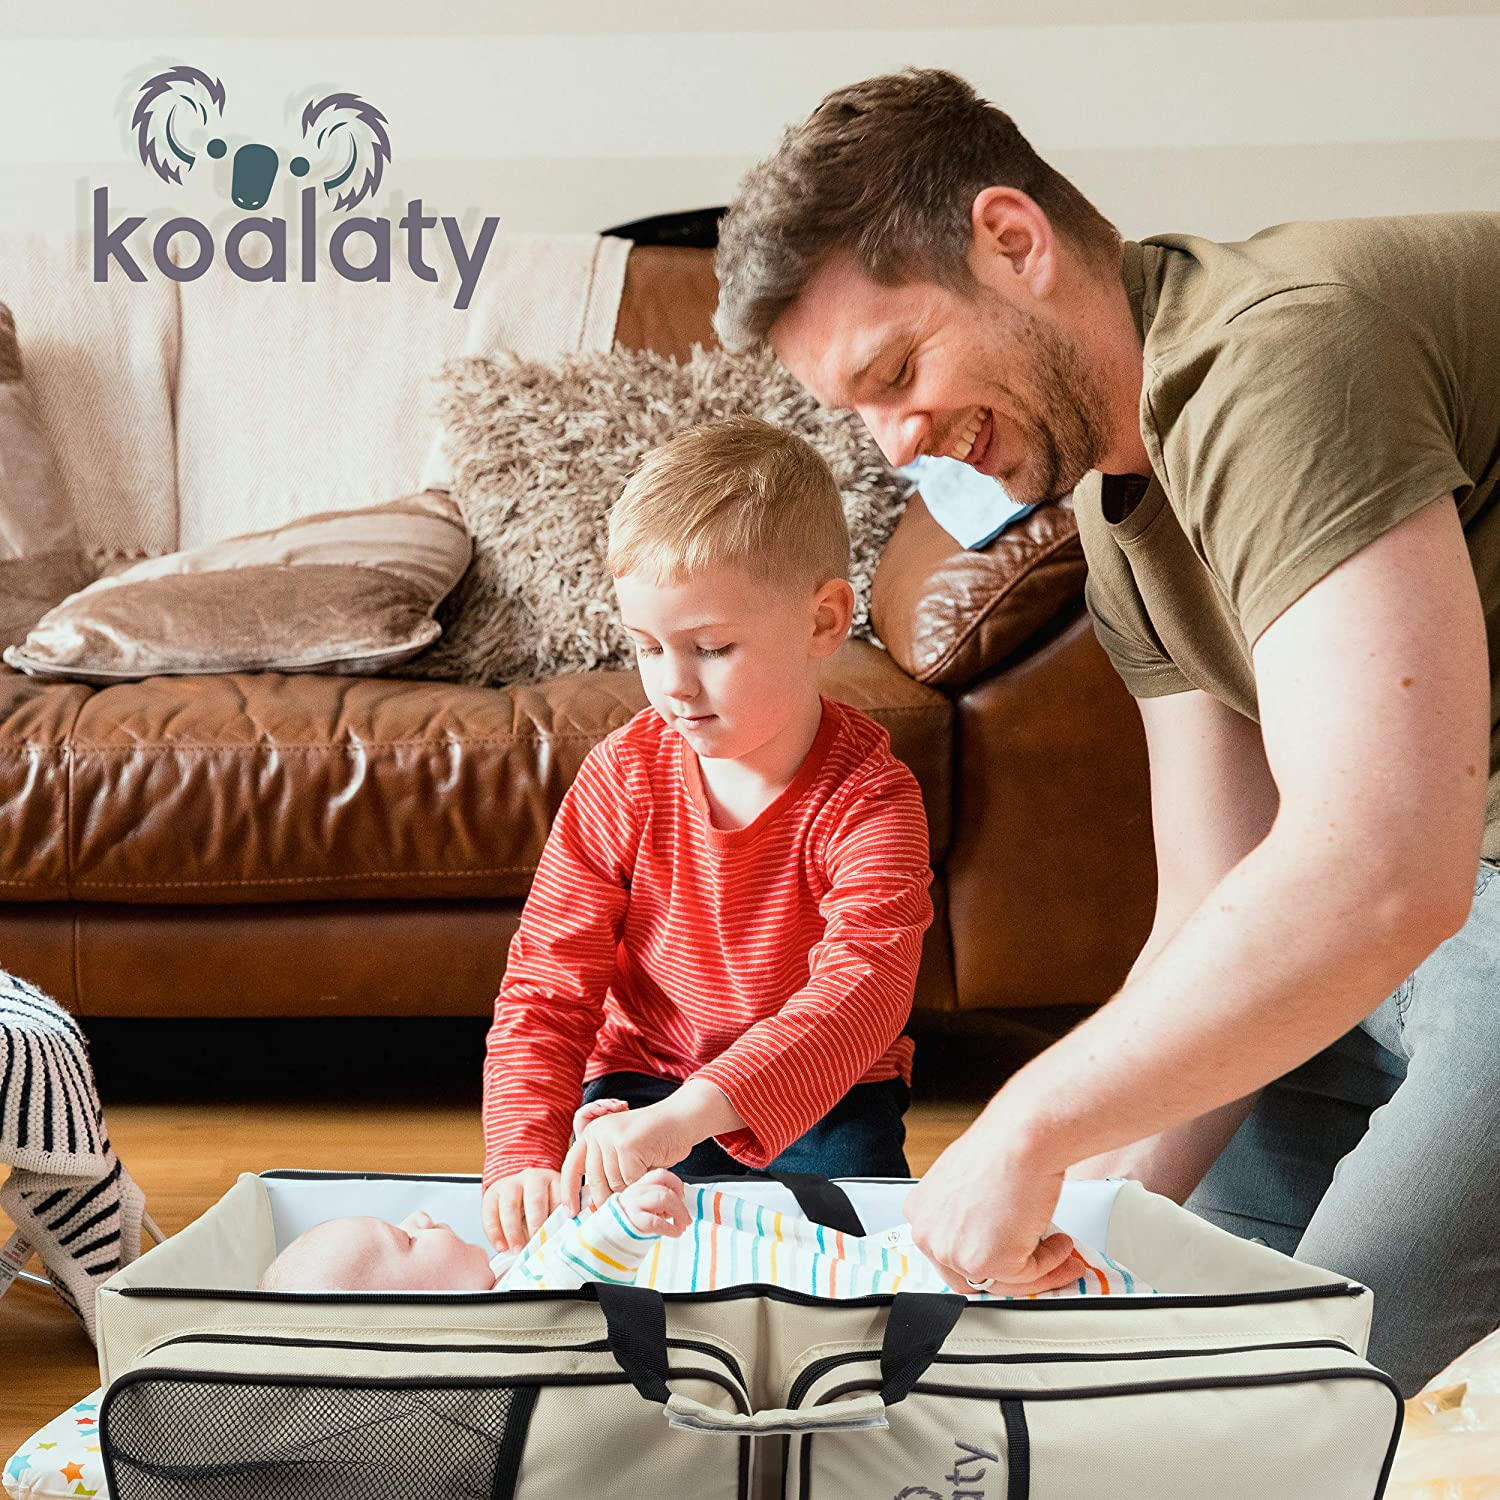 koalaty 3 in 1 universal infant travel tote review